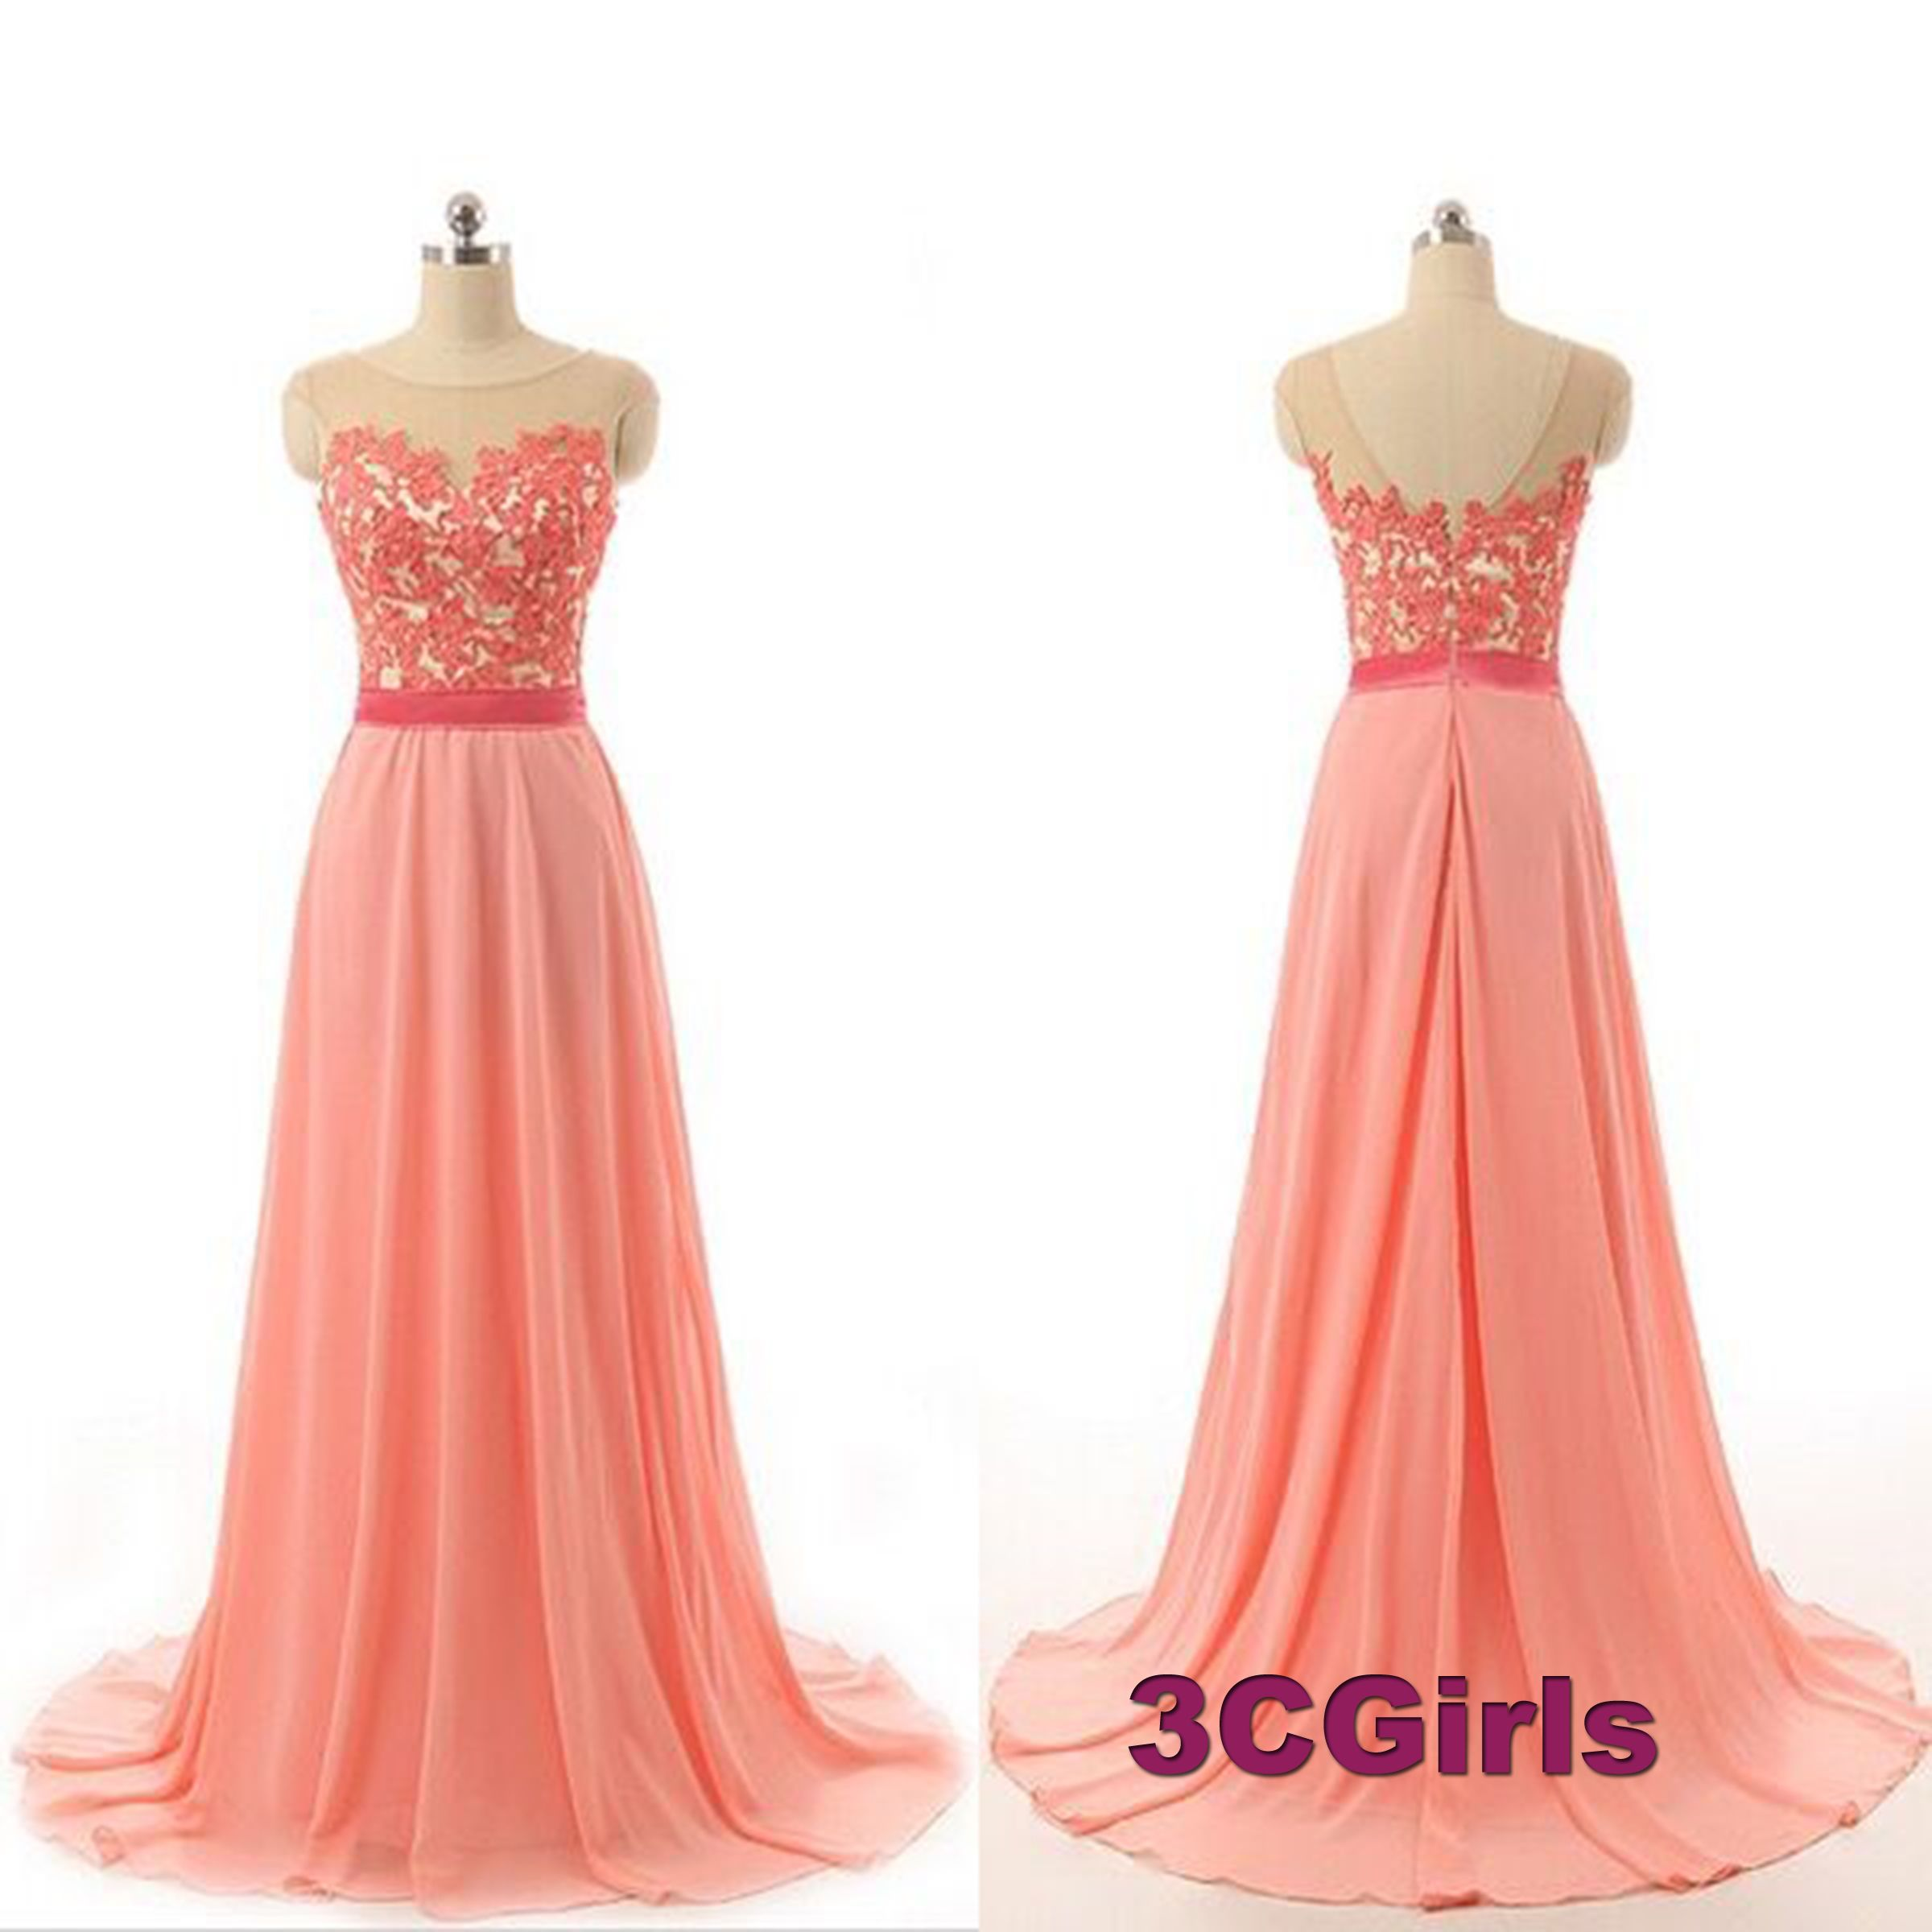 Beautiful peach lace chiffon floor length prom dress for teens ...